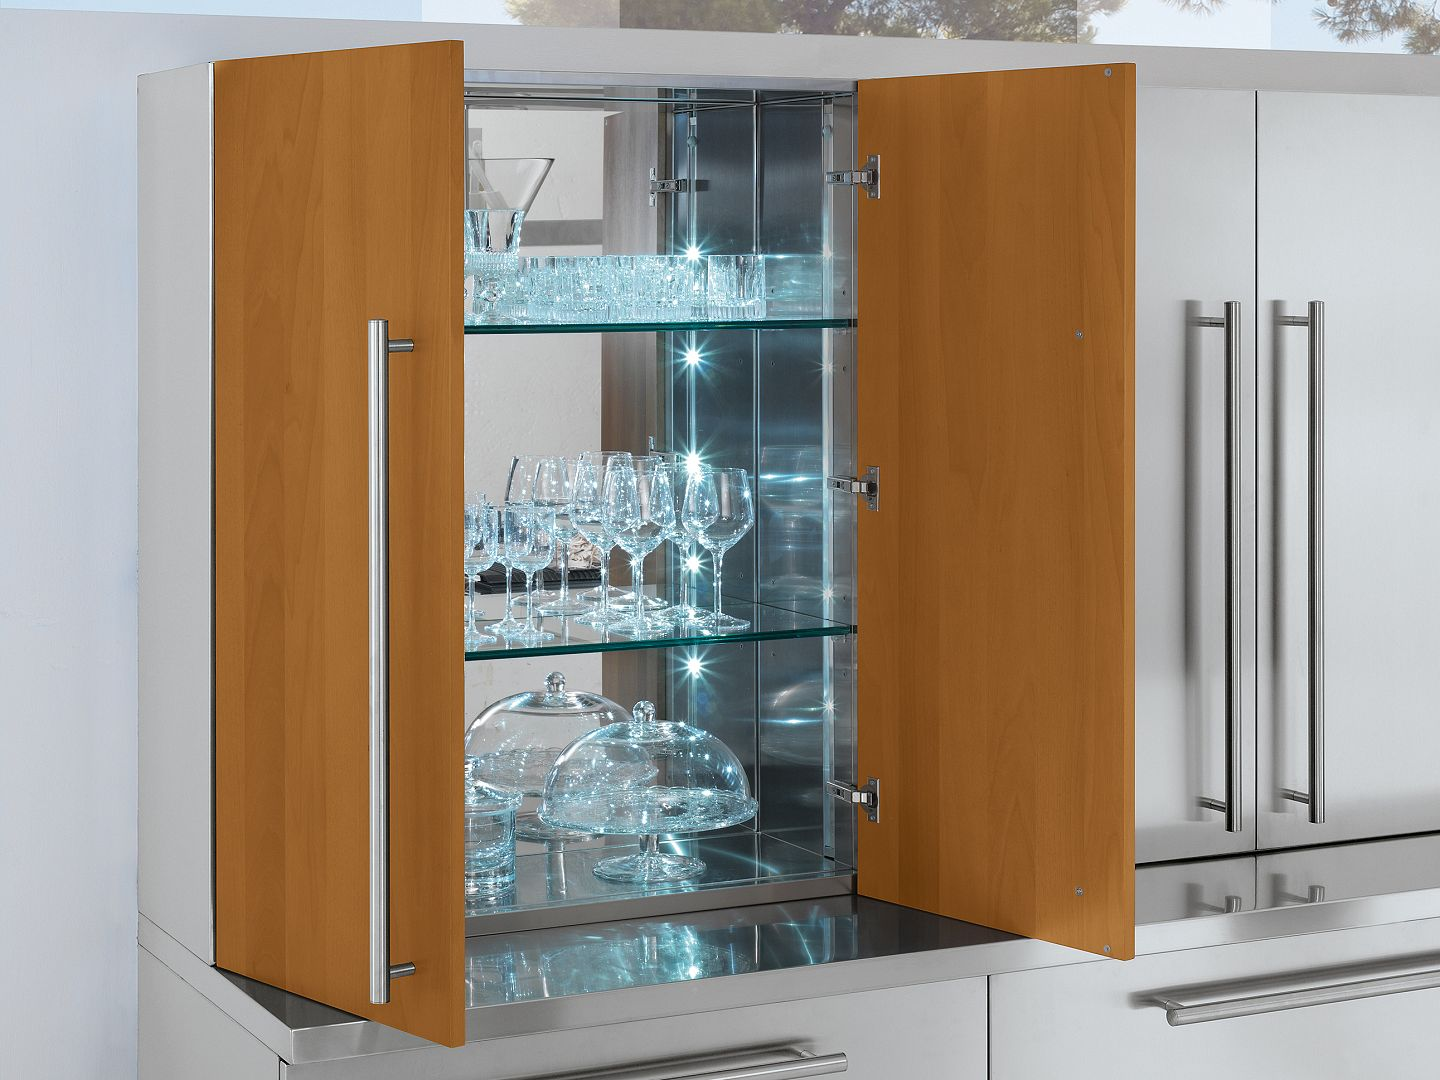 Arca Cucine Italy - Domestic stainless steel kitchens - Accessories - Crystals closet 1920